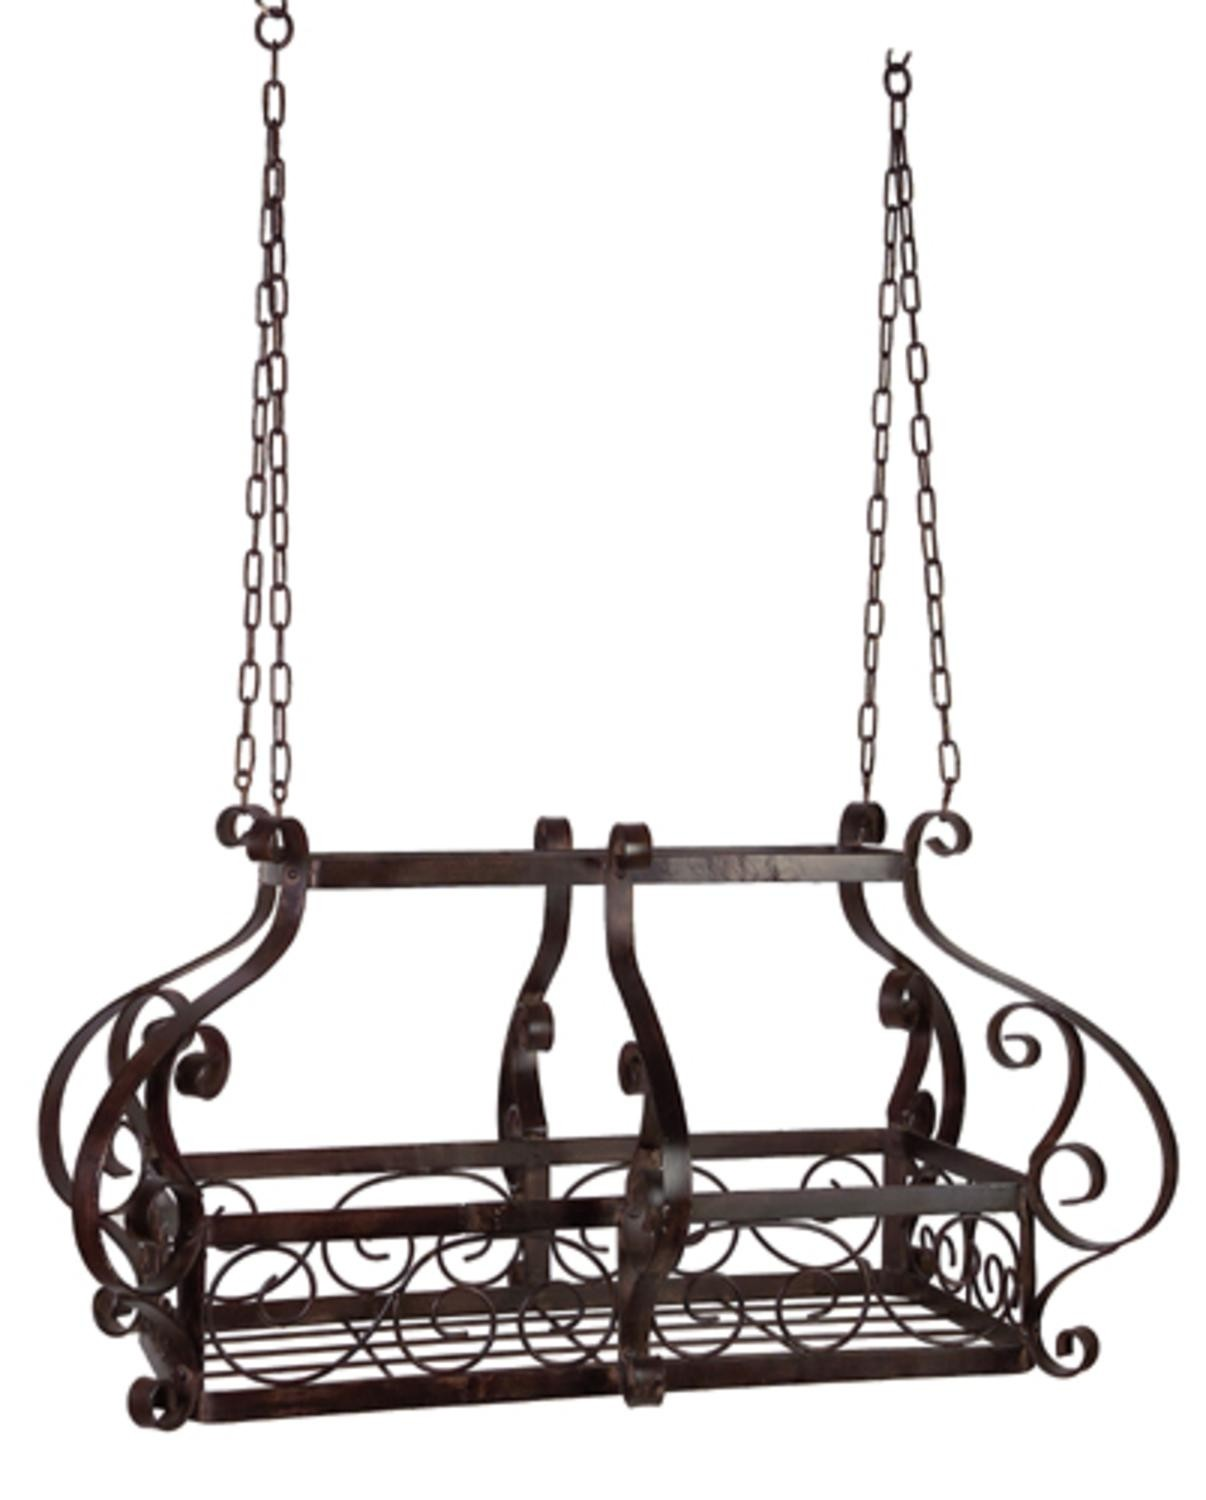 Old world kitchen wrought iron hanging pot rack for cooking